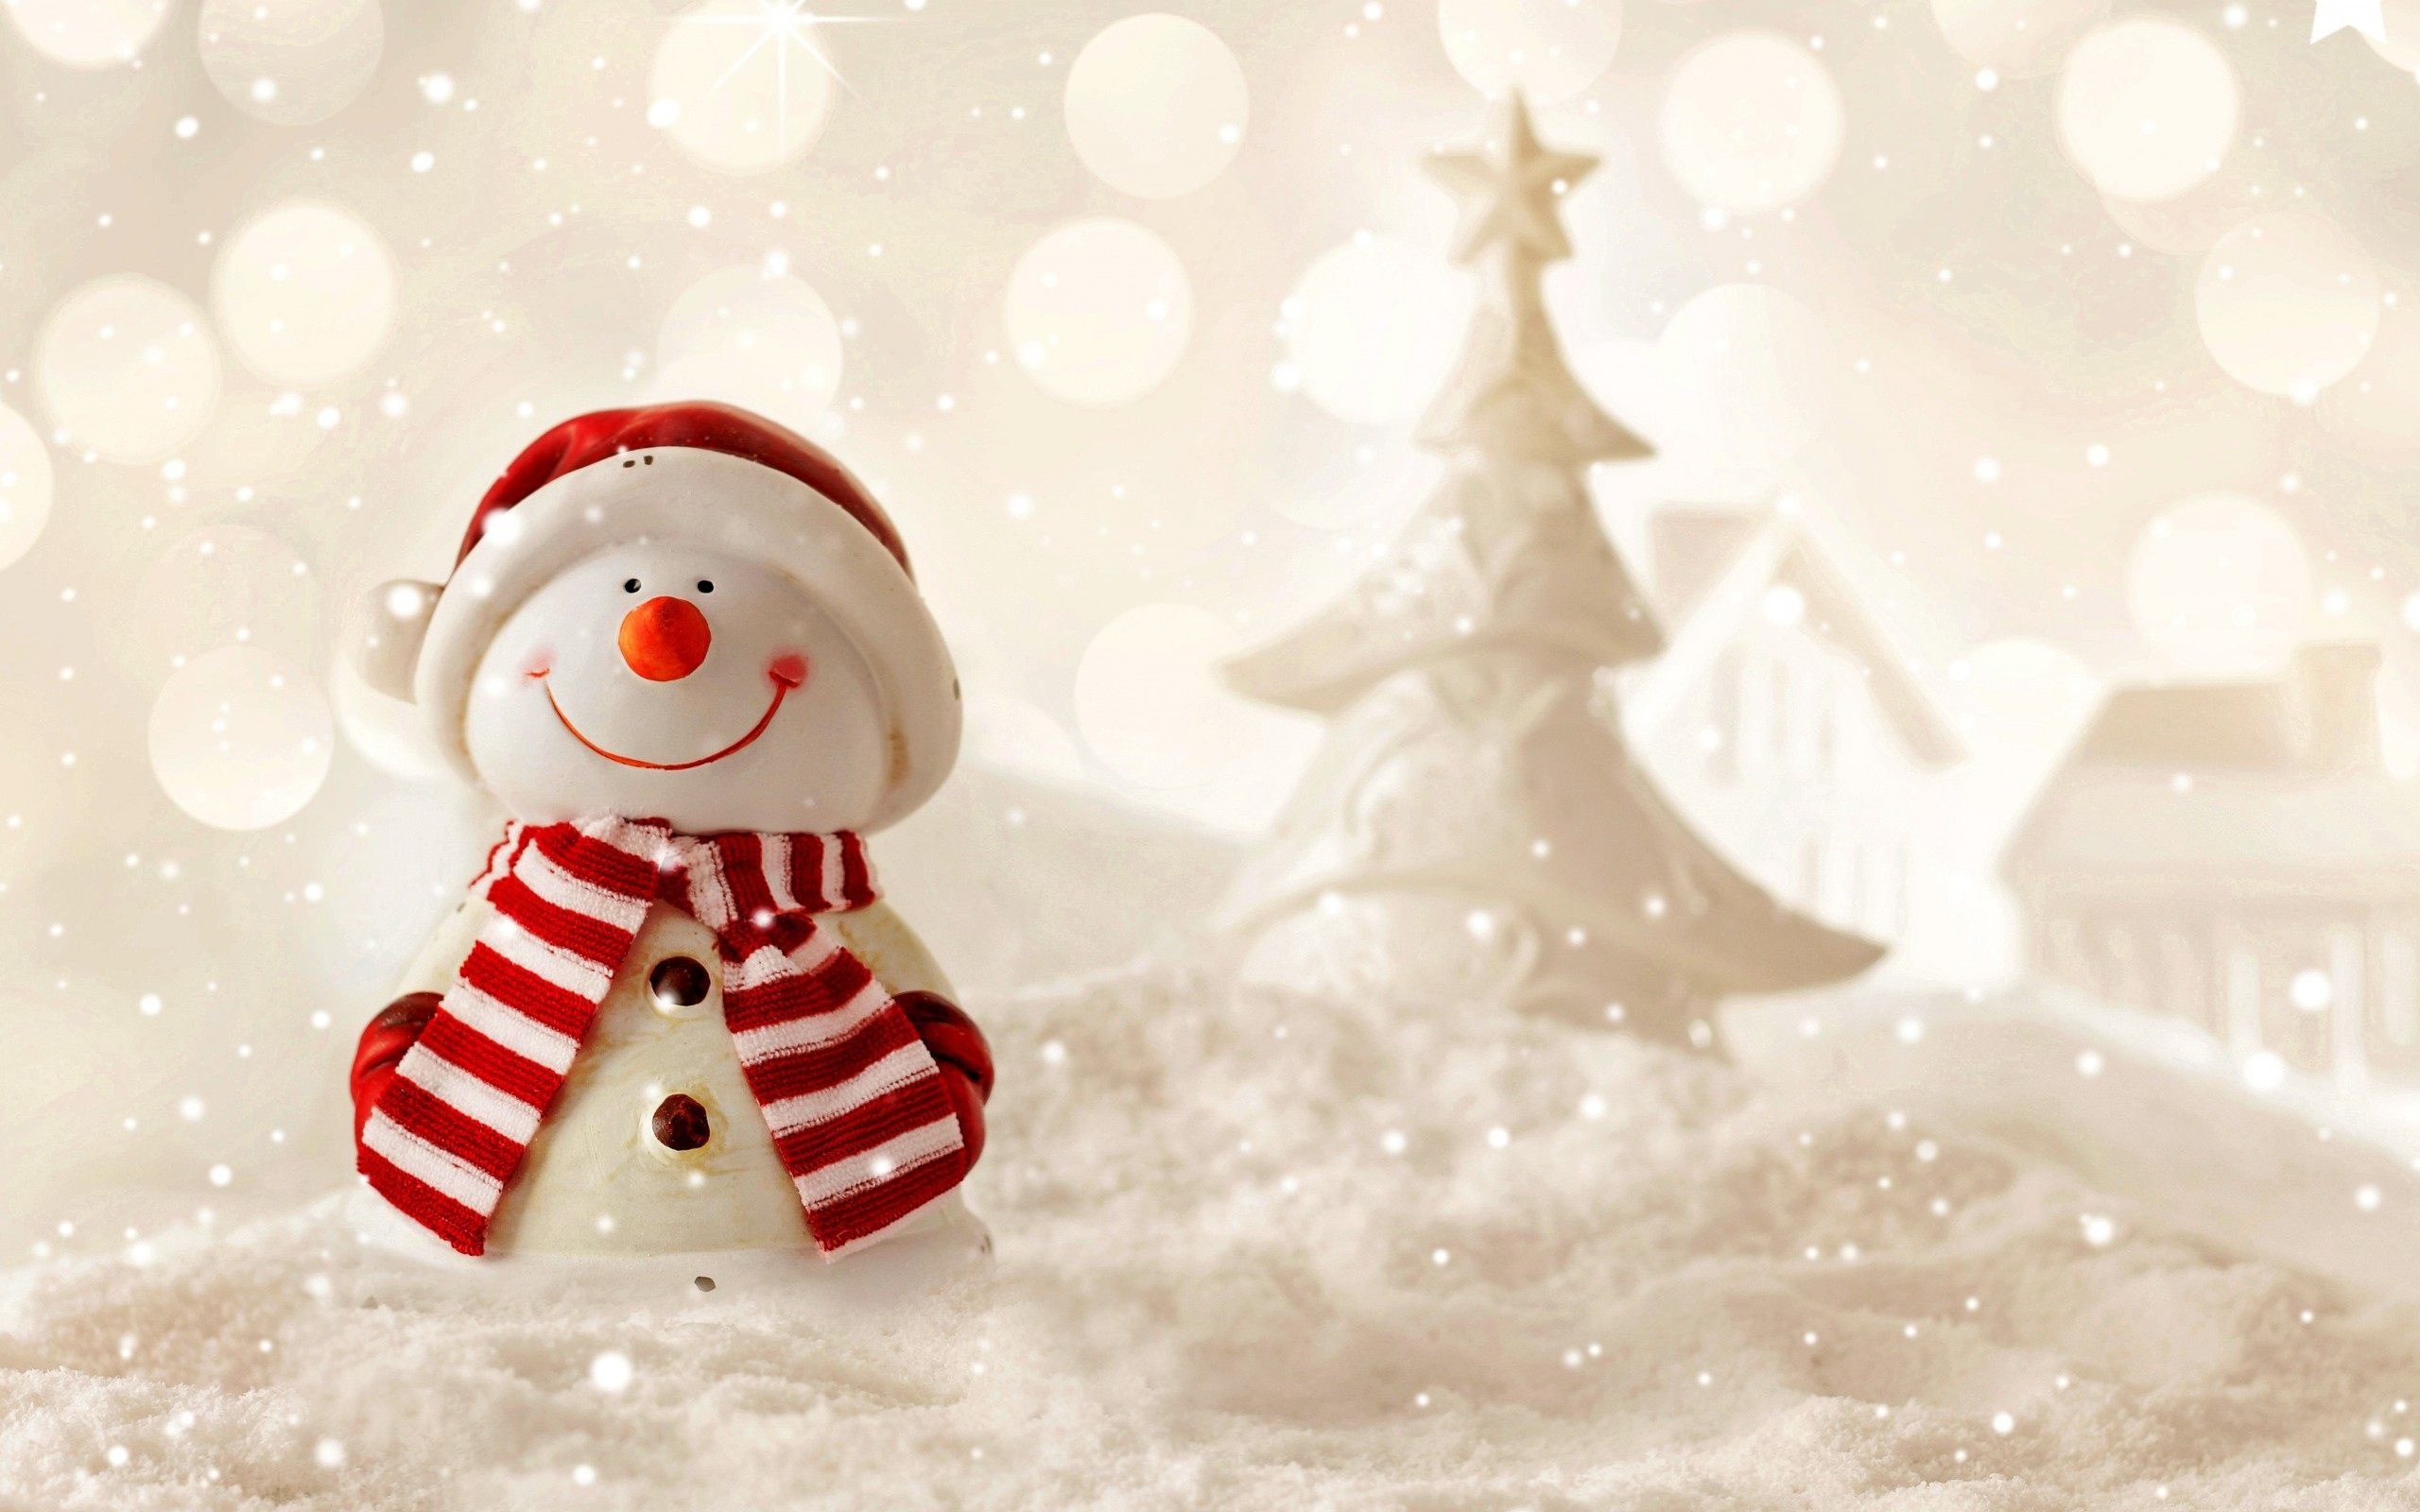 Cute Merry Christmas Wallpaper (64+ images)